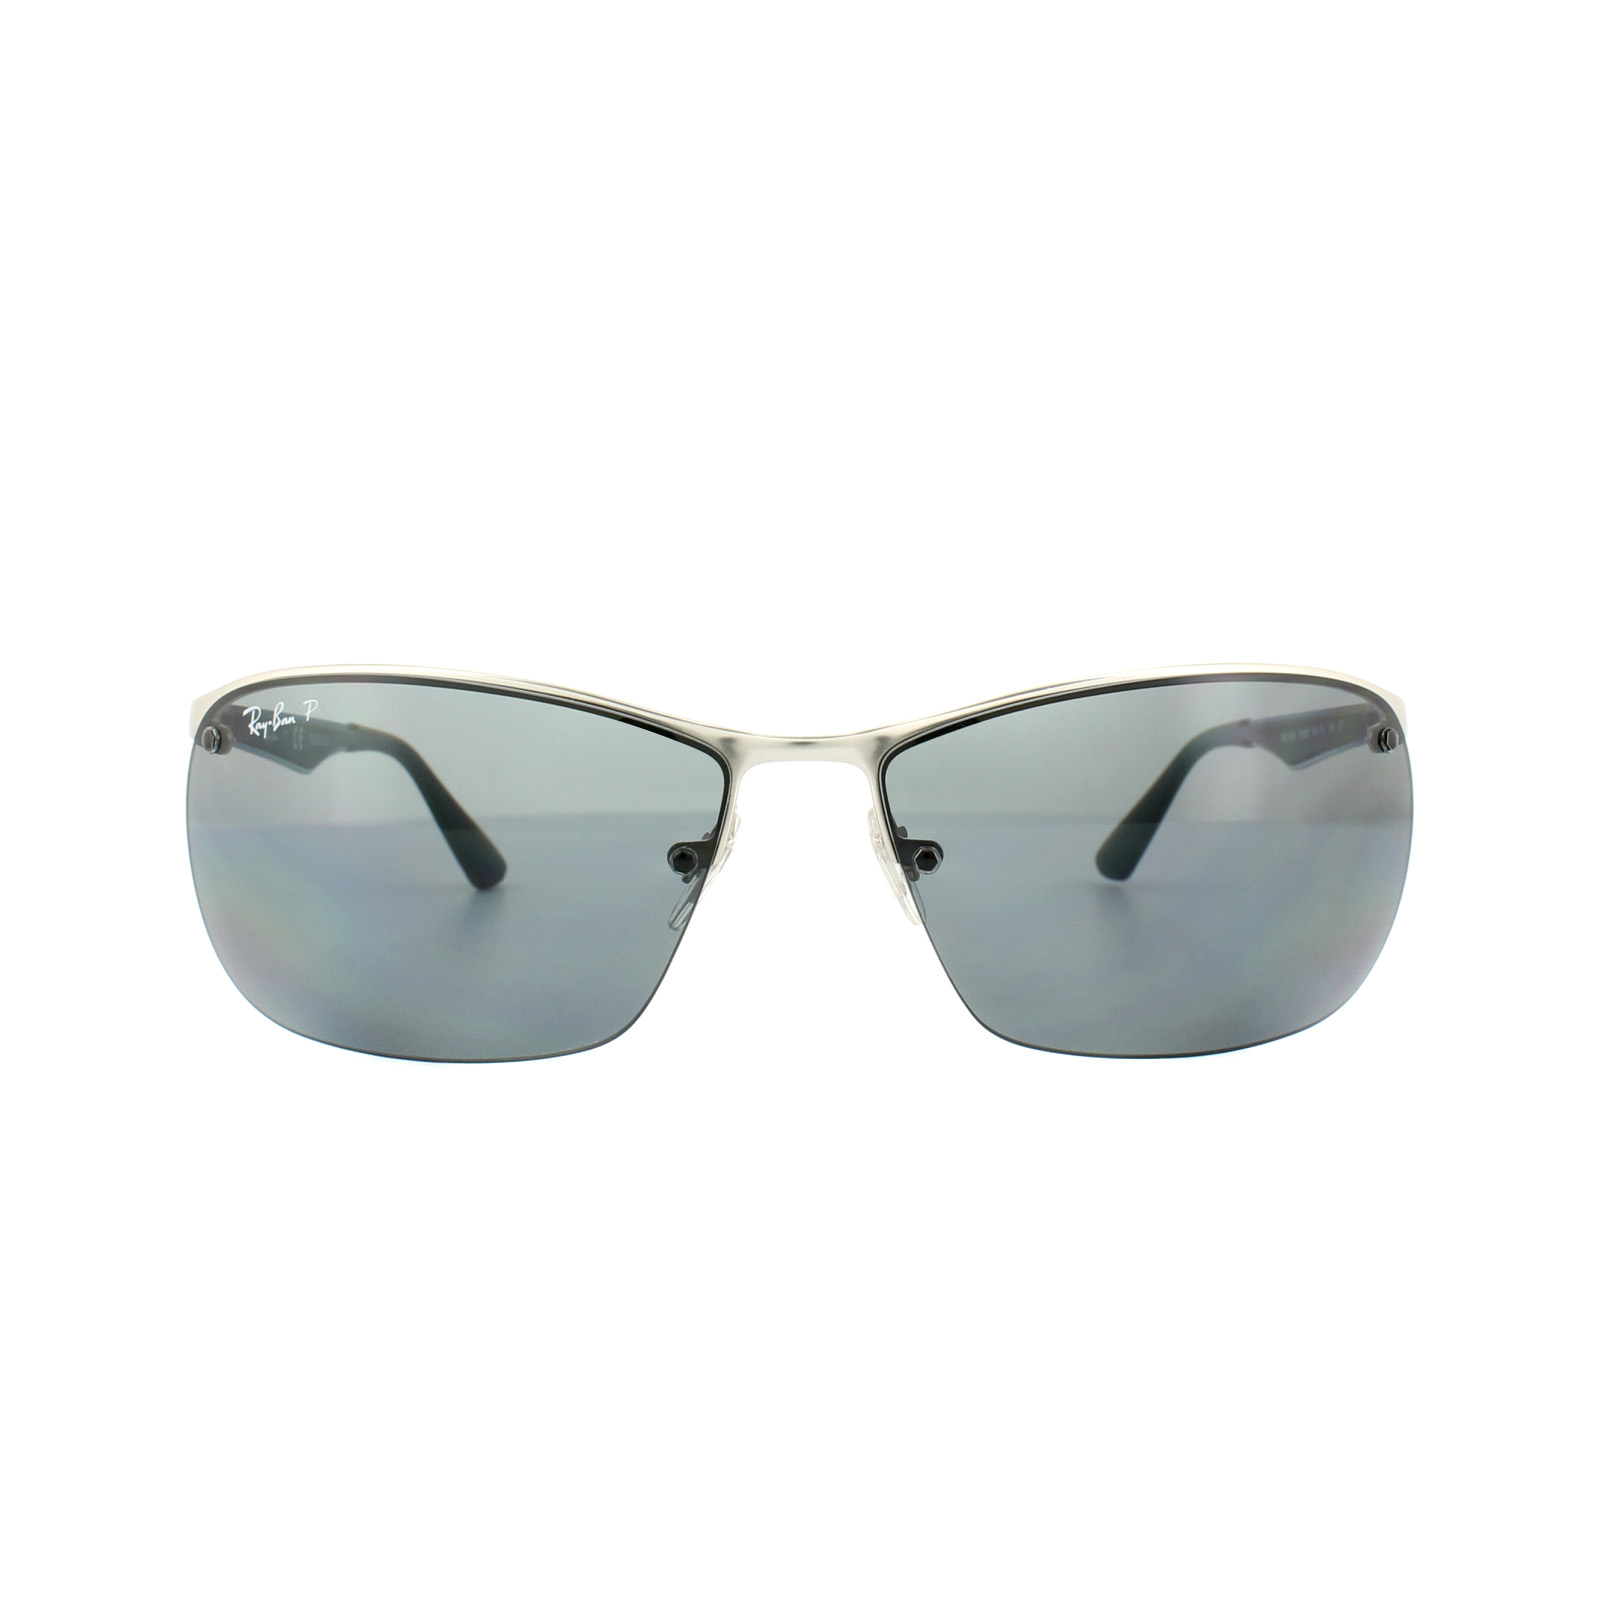 1f60f55092f Sentinel Ray-Ban Sunglasses 3550 019 81 Silver Grey Gradient Polarized